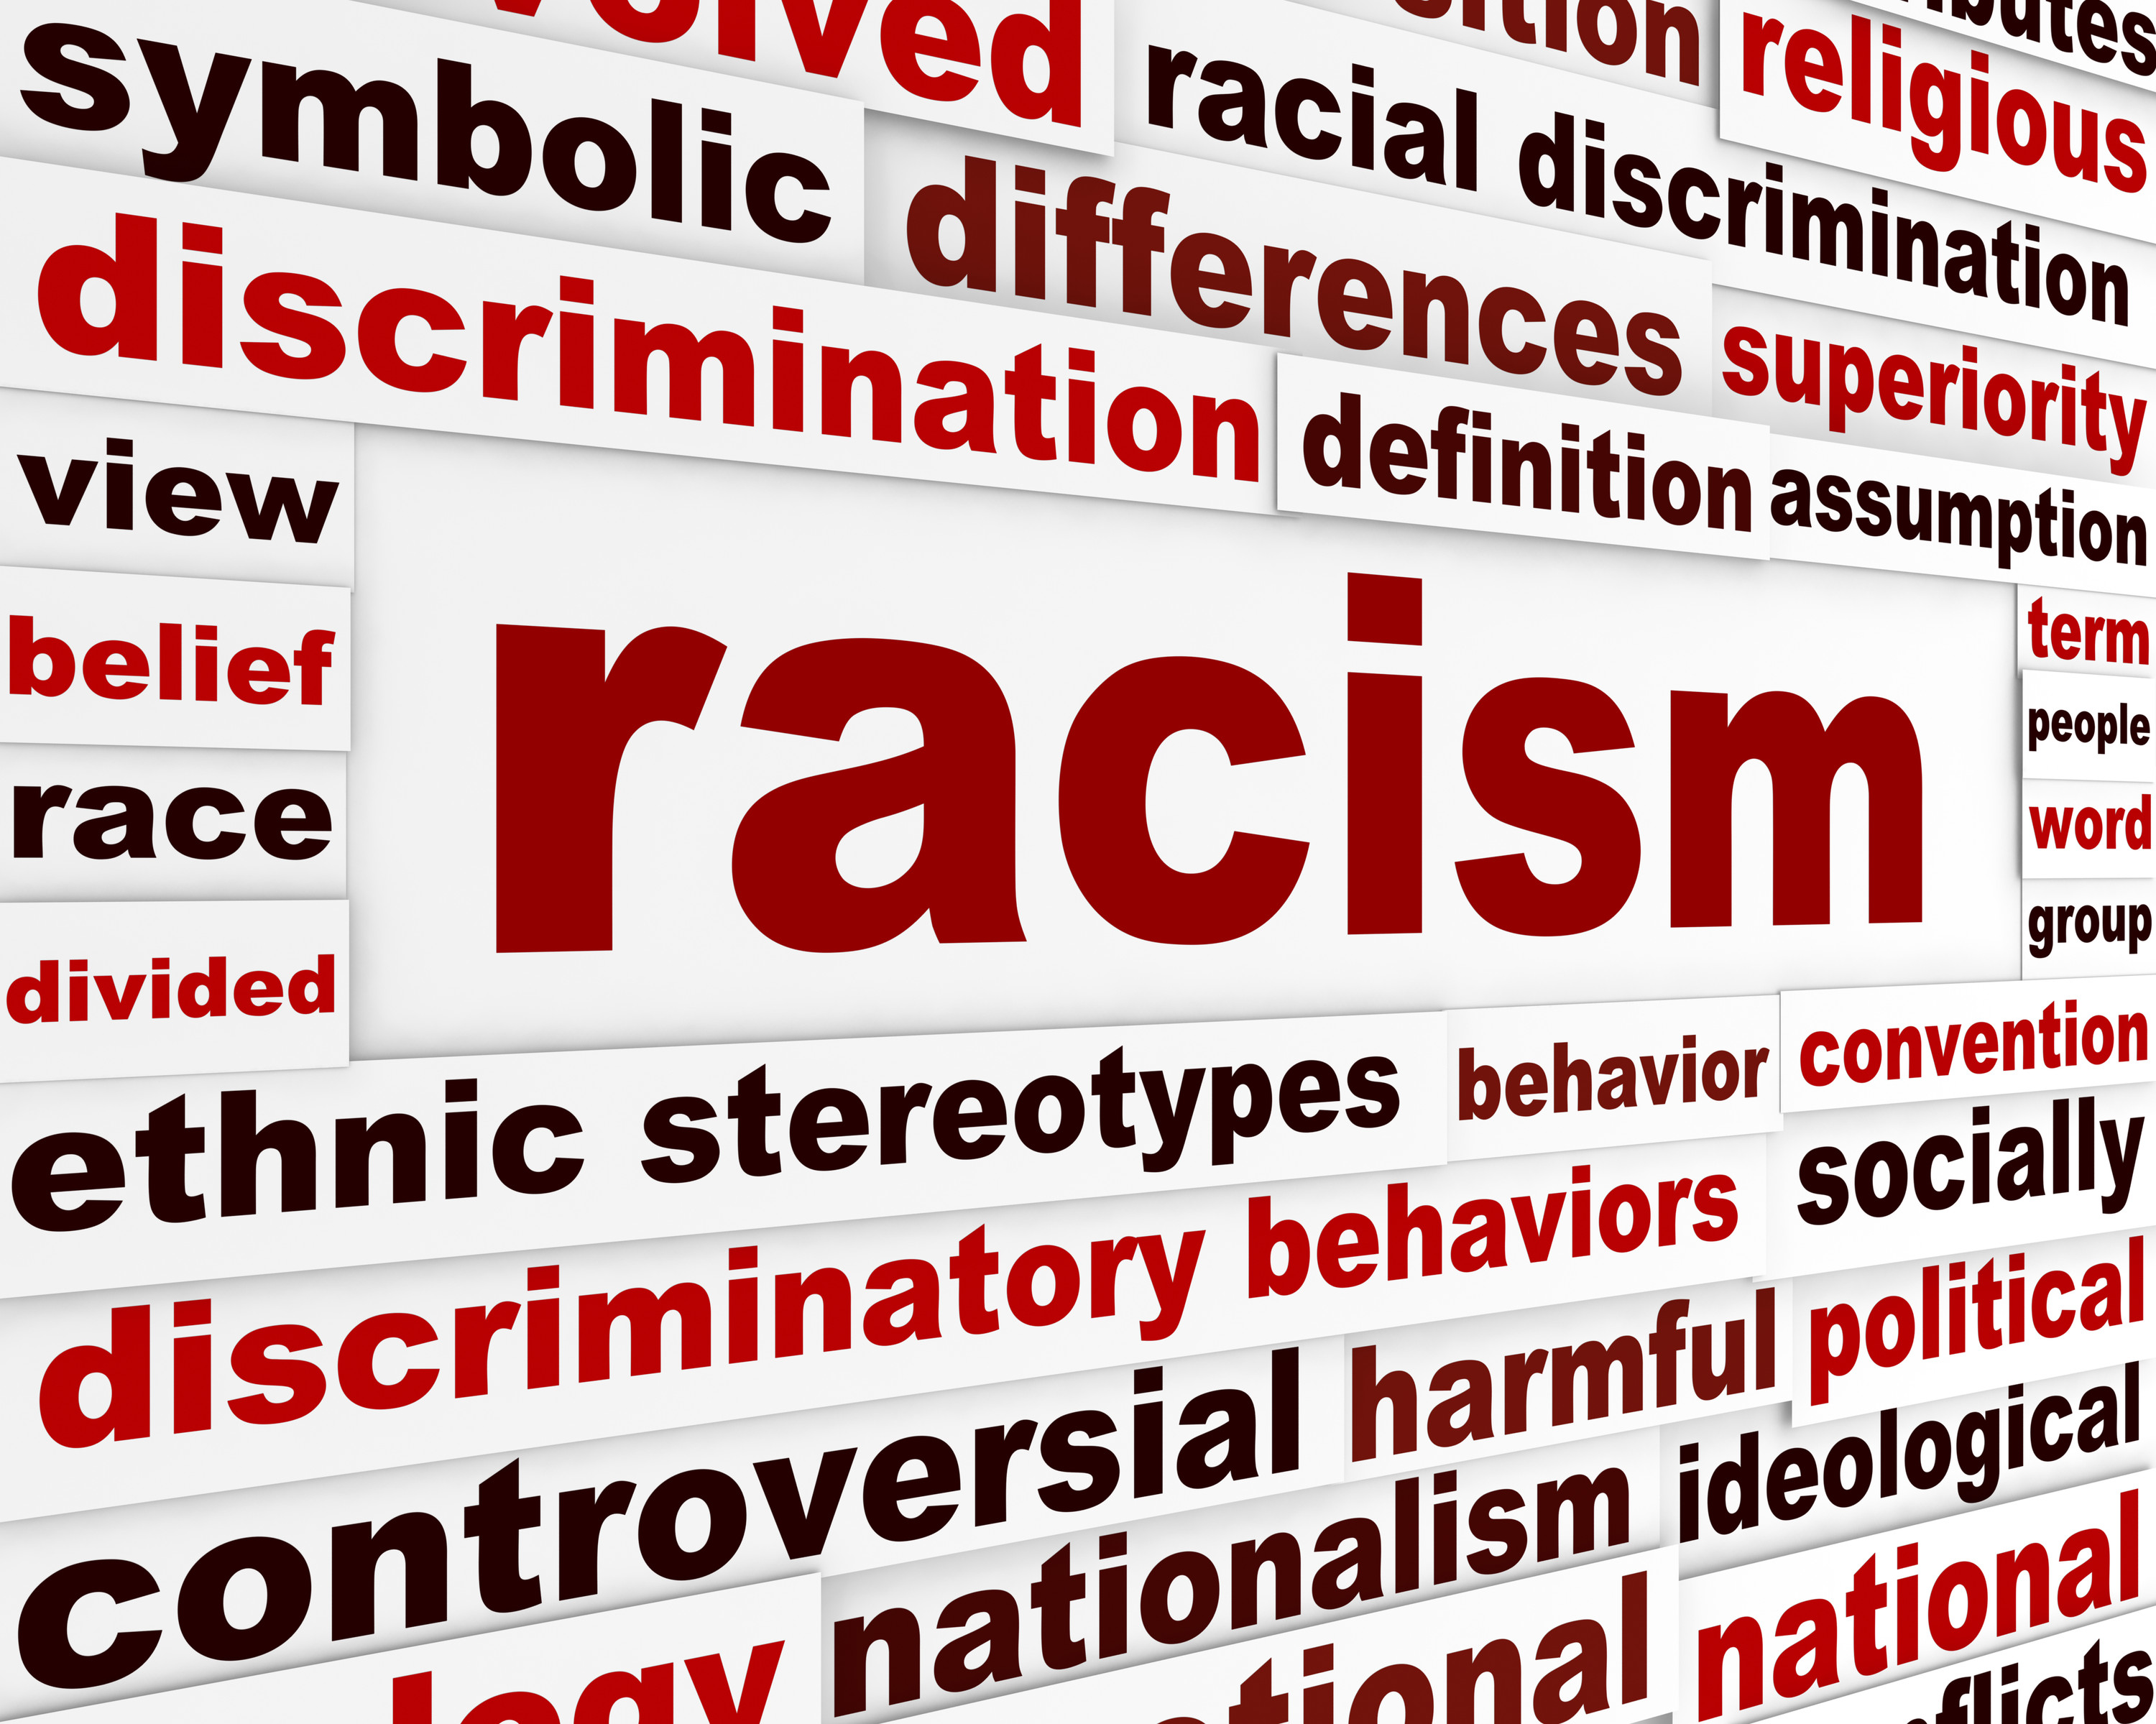 alhr – chorus of opposition to racial discrimination changes grows